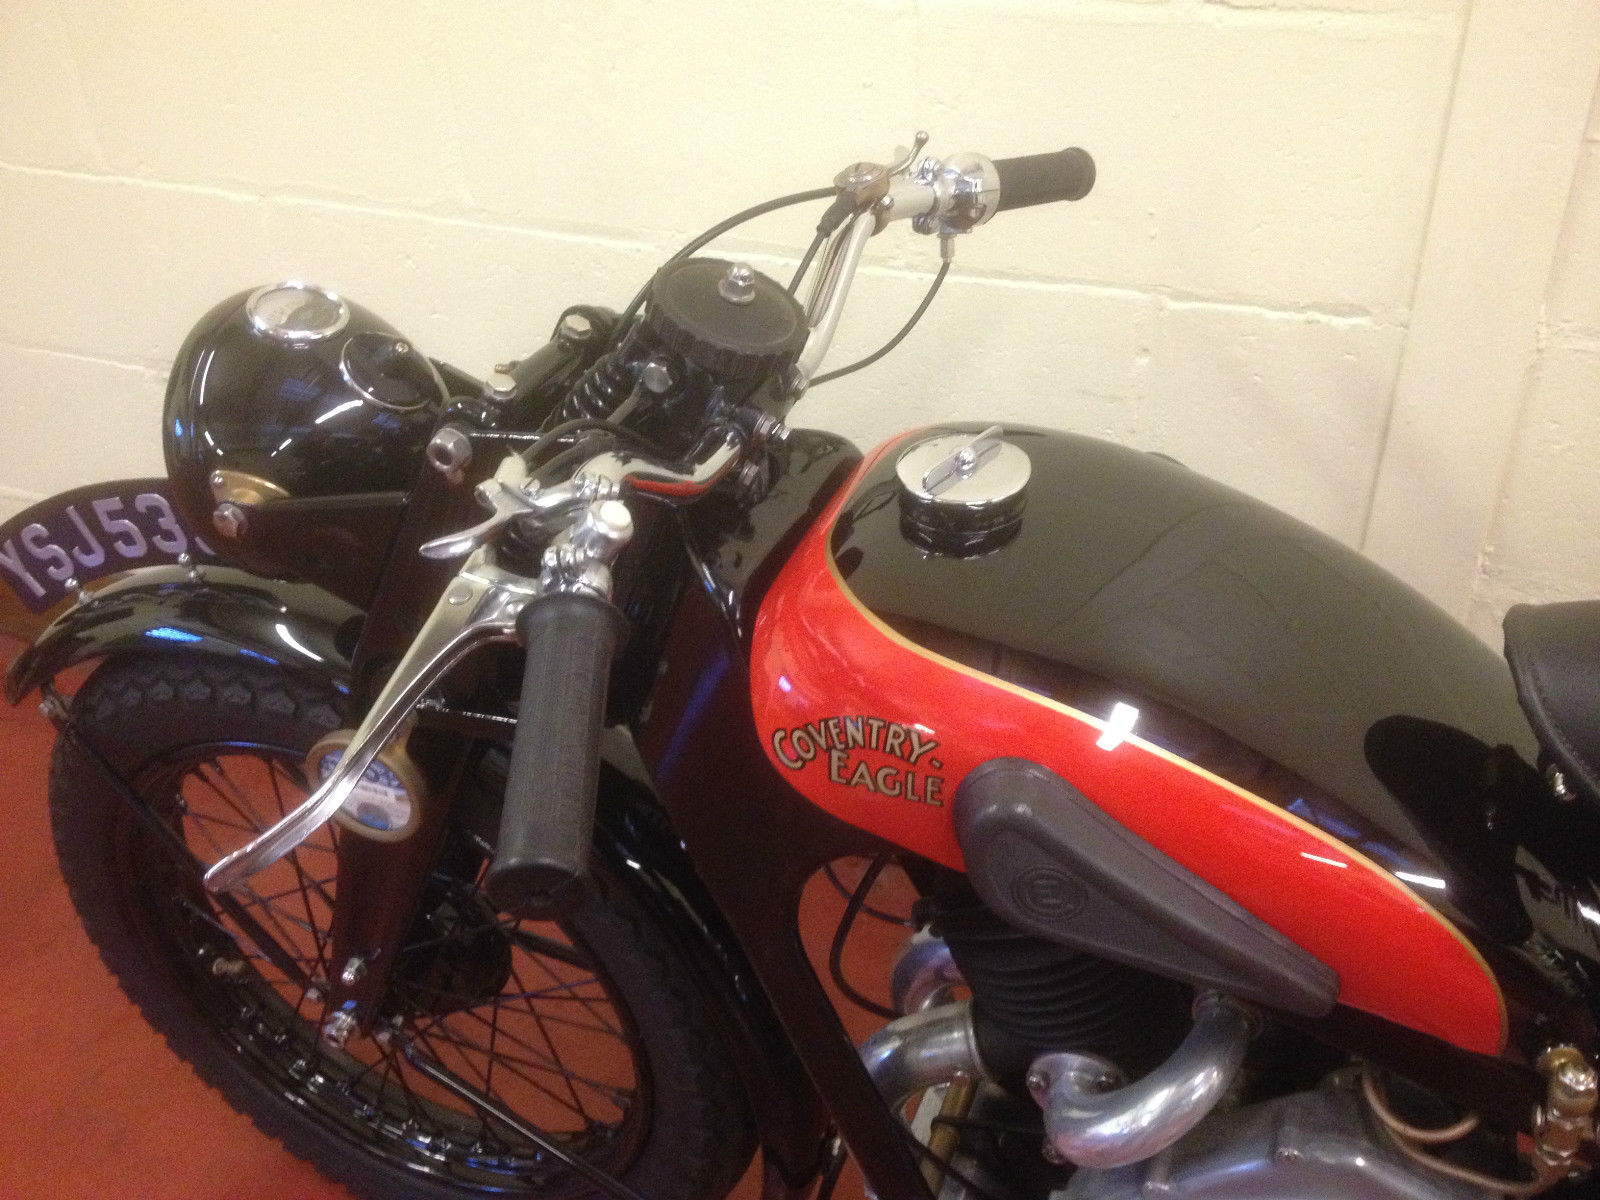 Coventry-Eagle - 1934 - Levers, Handlebars and Grips.